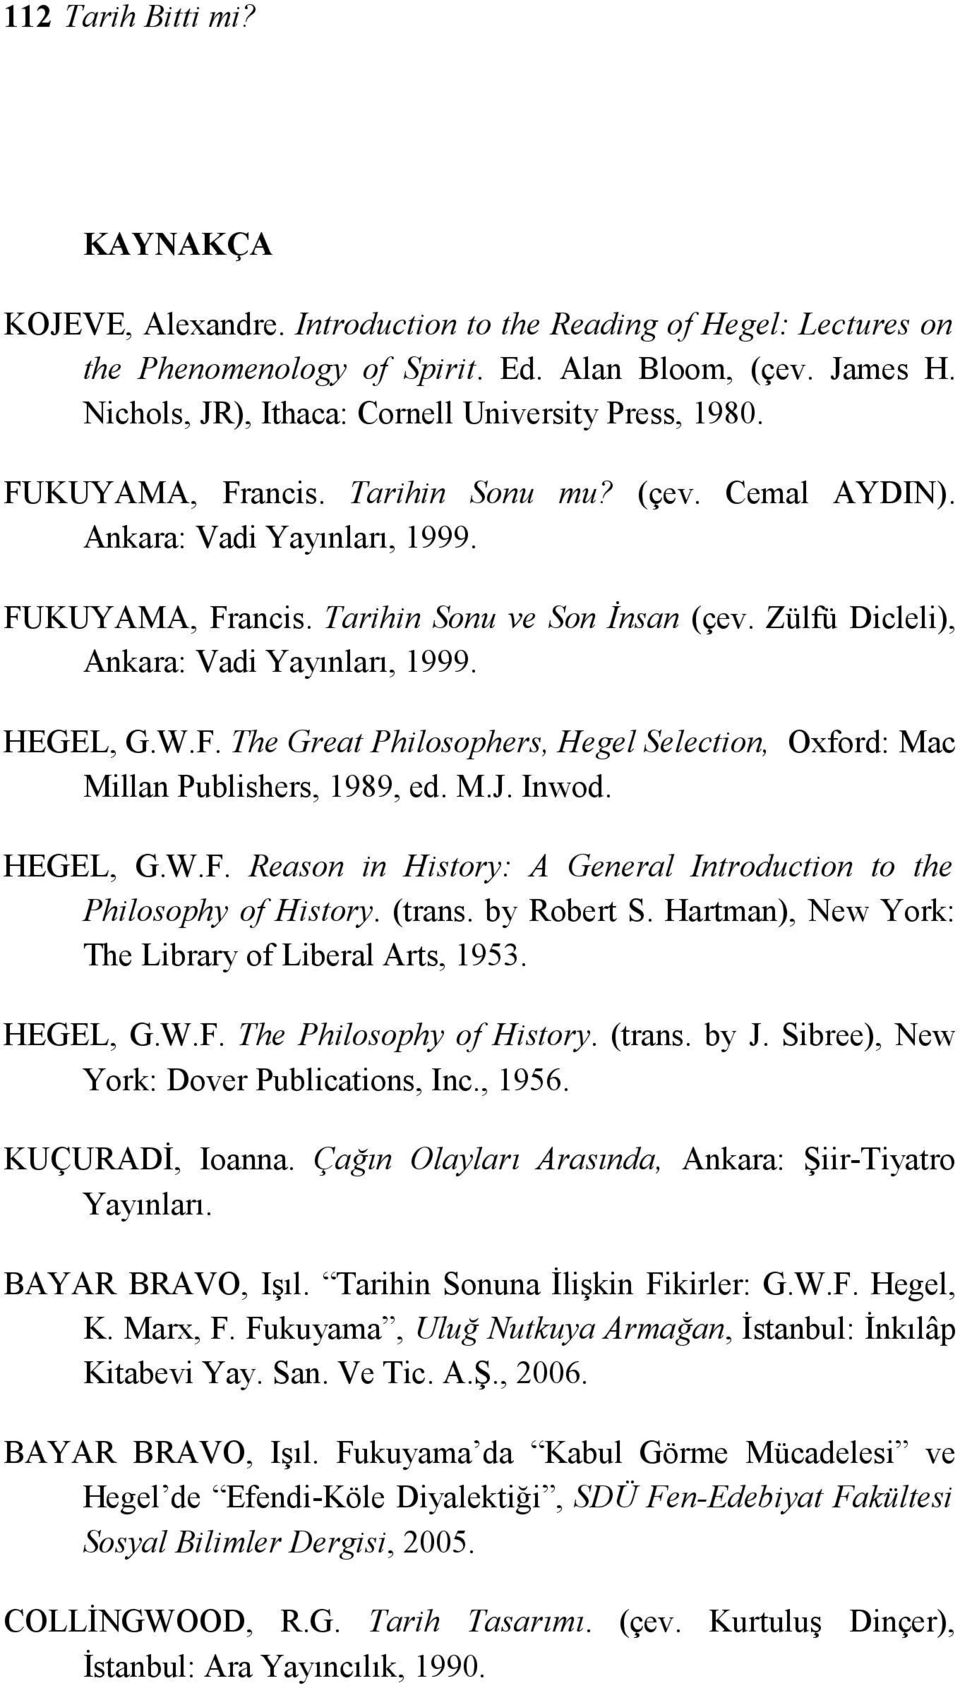 Zülfü Dicleli), Ankara: Vadi Yayınları, 1999. HEGEL, G.W.F. The Great Philosophers, Hegel Selection, Oxford: Mac Millan Publishers, 1989, ed. M.J. Inwod. HEGEL, G.W.F. Reason in History: A General Introduction to the Philosophy of History.